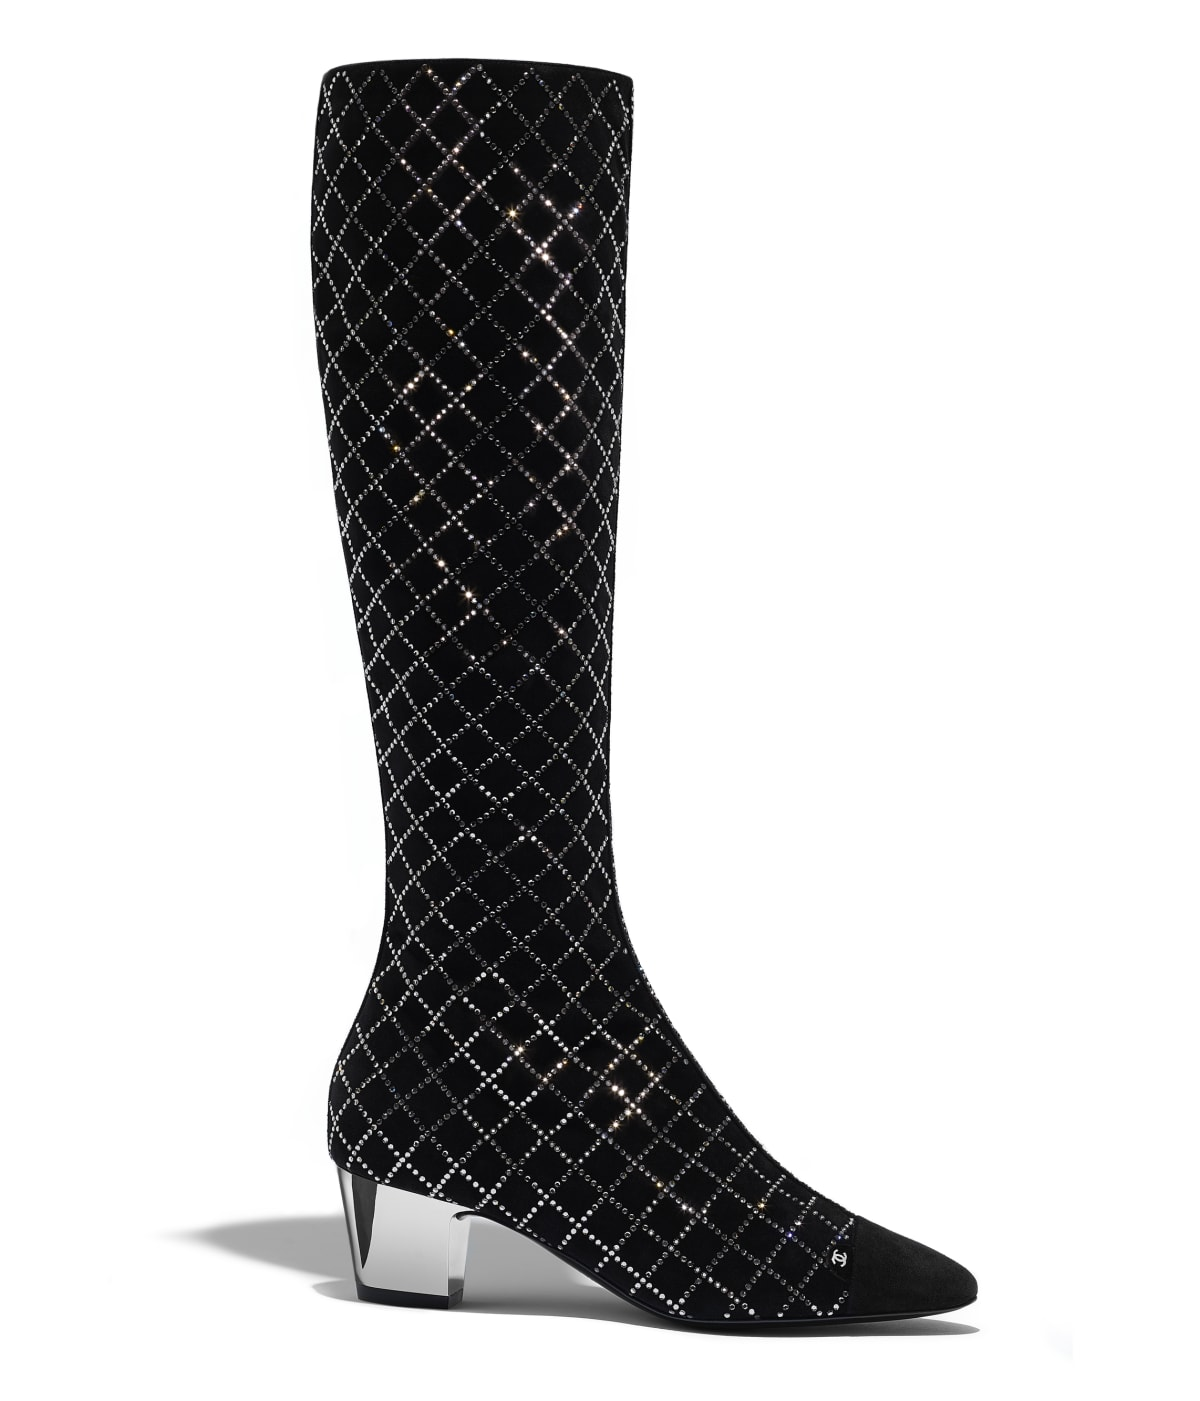 0473dd1c8a3 Bottes - Chaussures - CHANEL